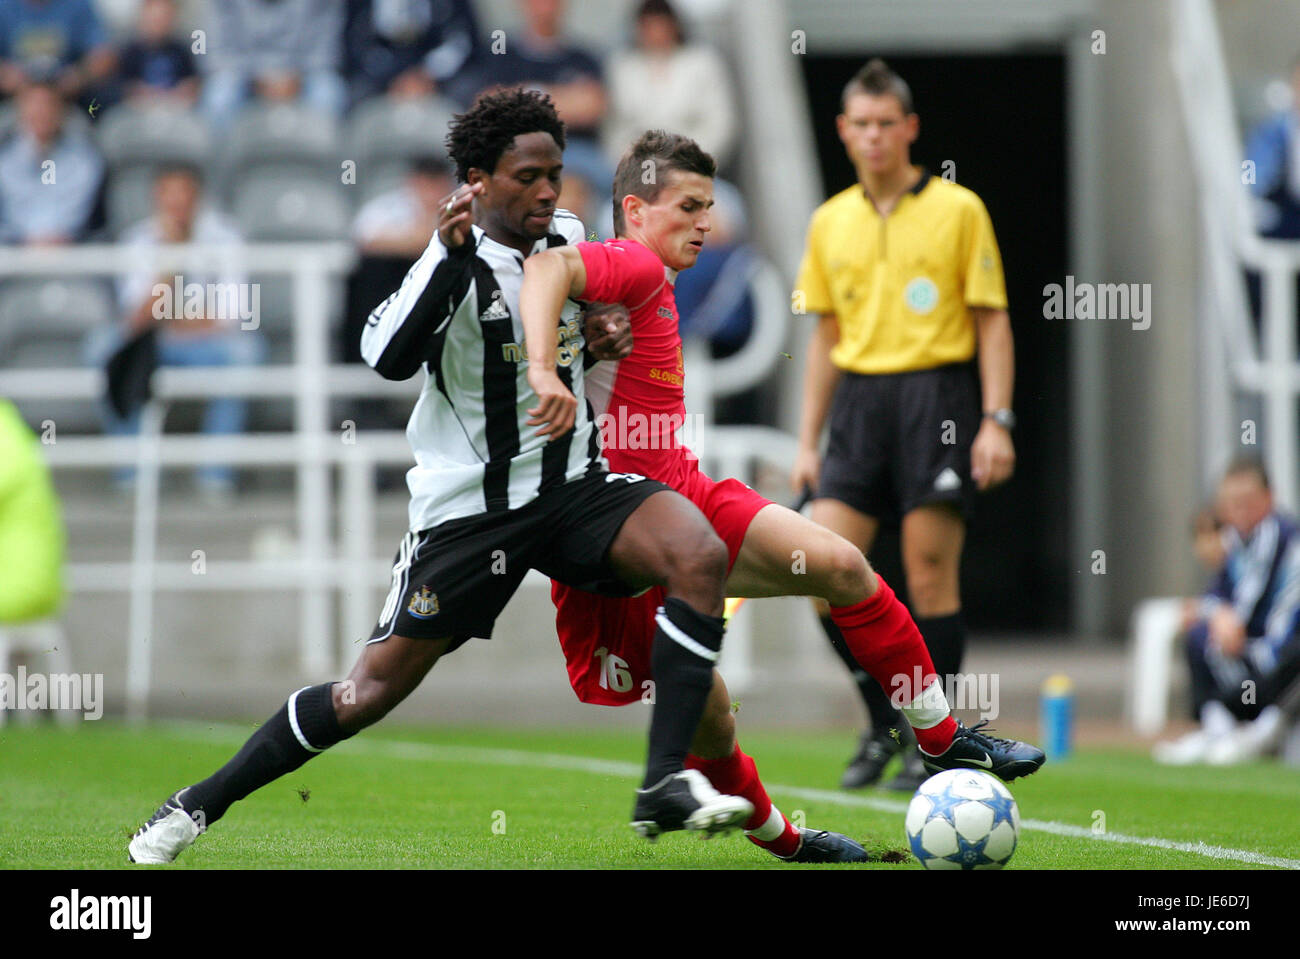 C BABAYARO & MATEJ IZVOLT NEWCASTLE UTD V DUBNICA ST.JAMES PARK NEWCASTLE 23 July 2005 - Stock Image